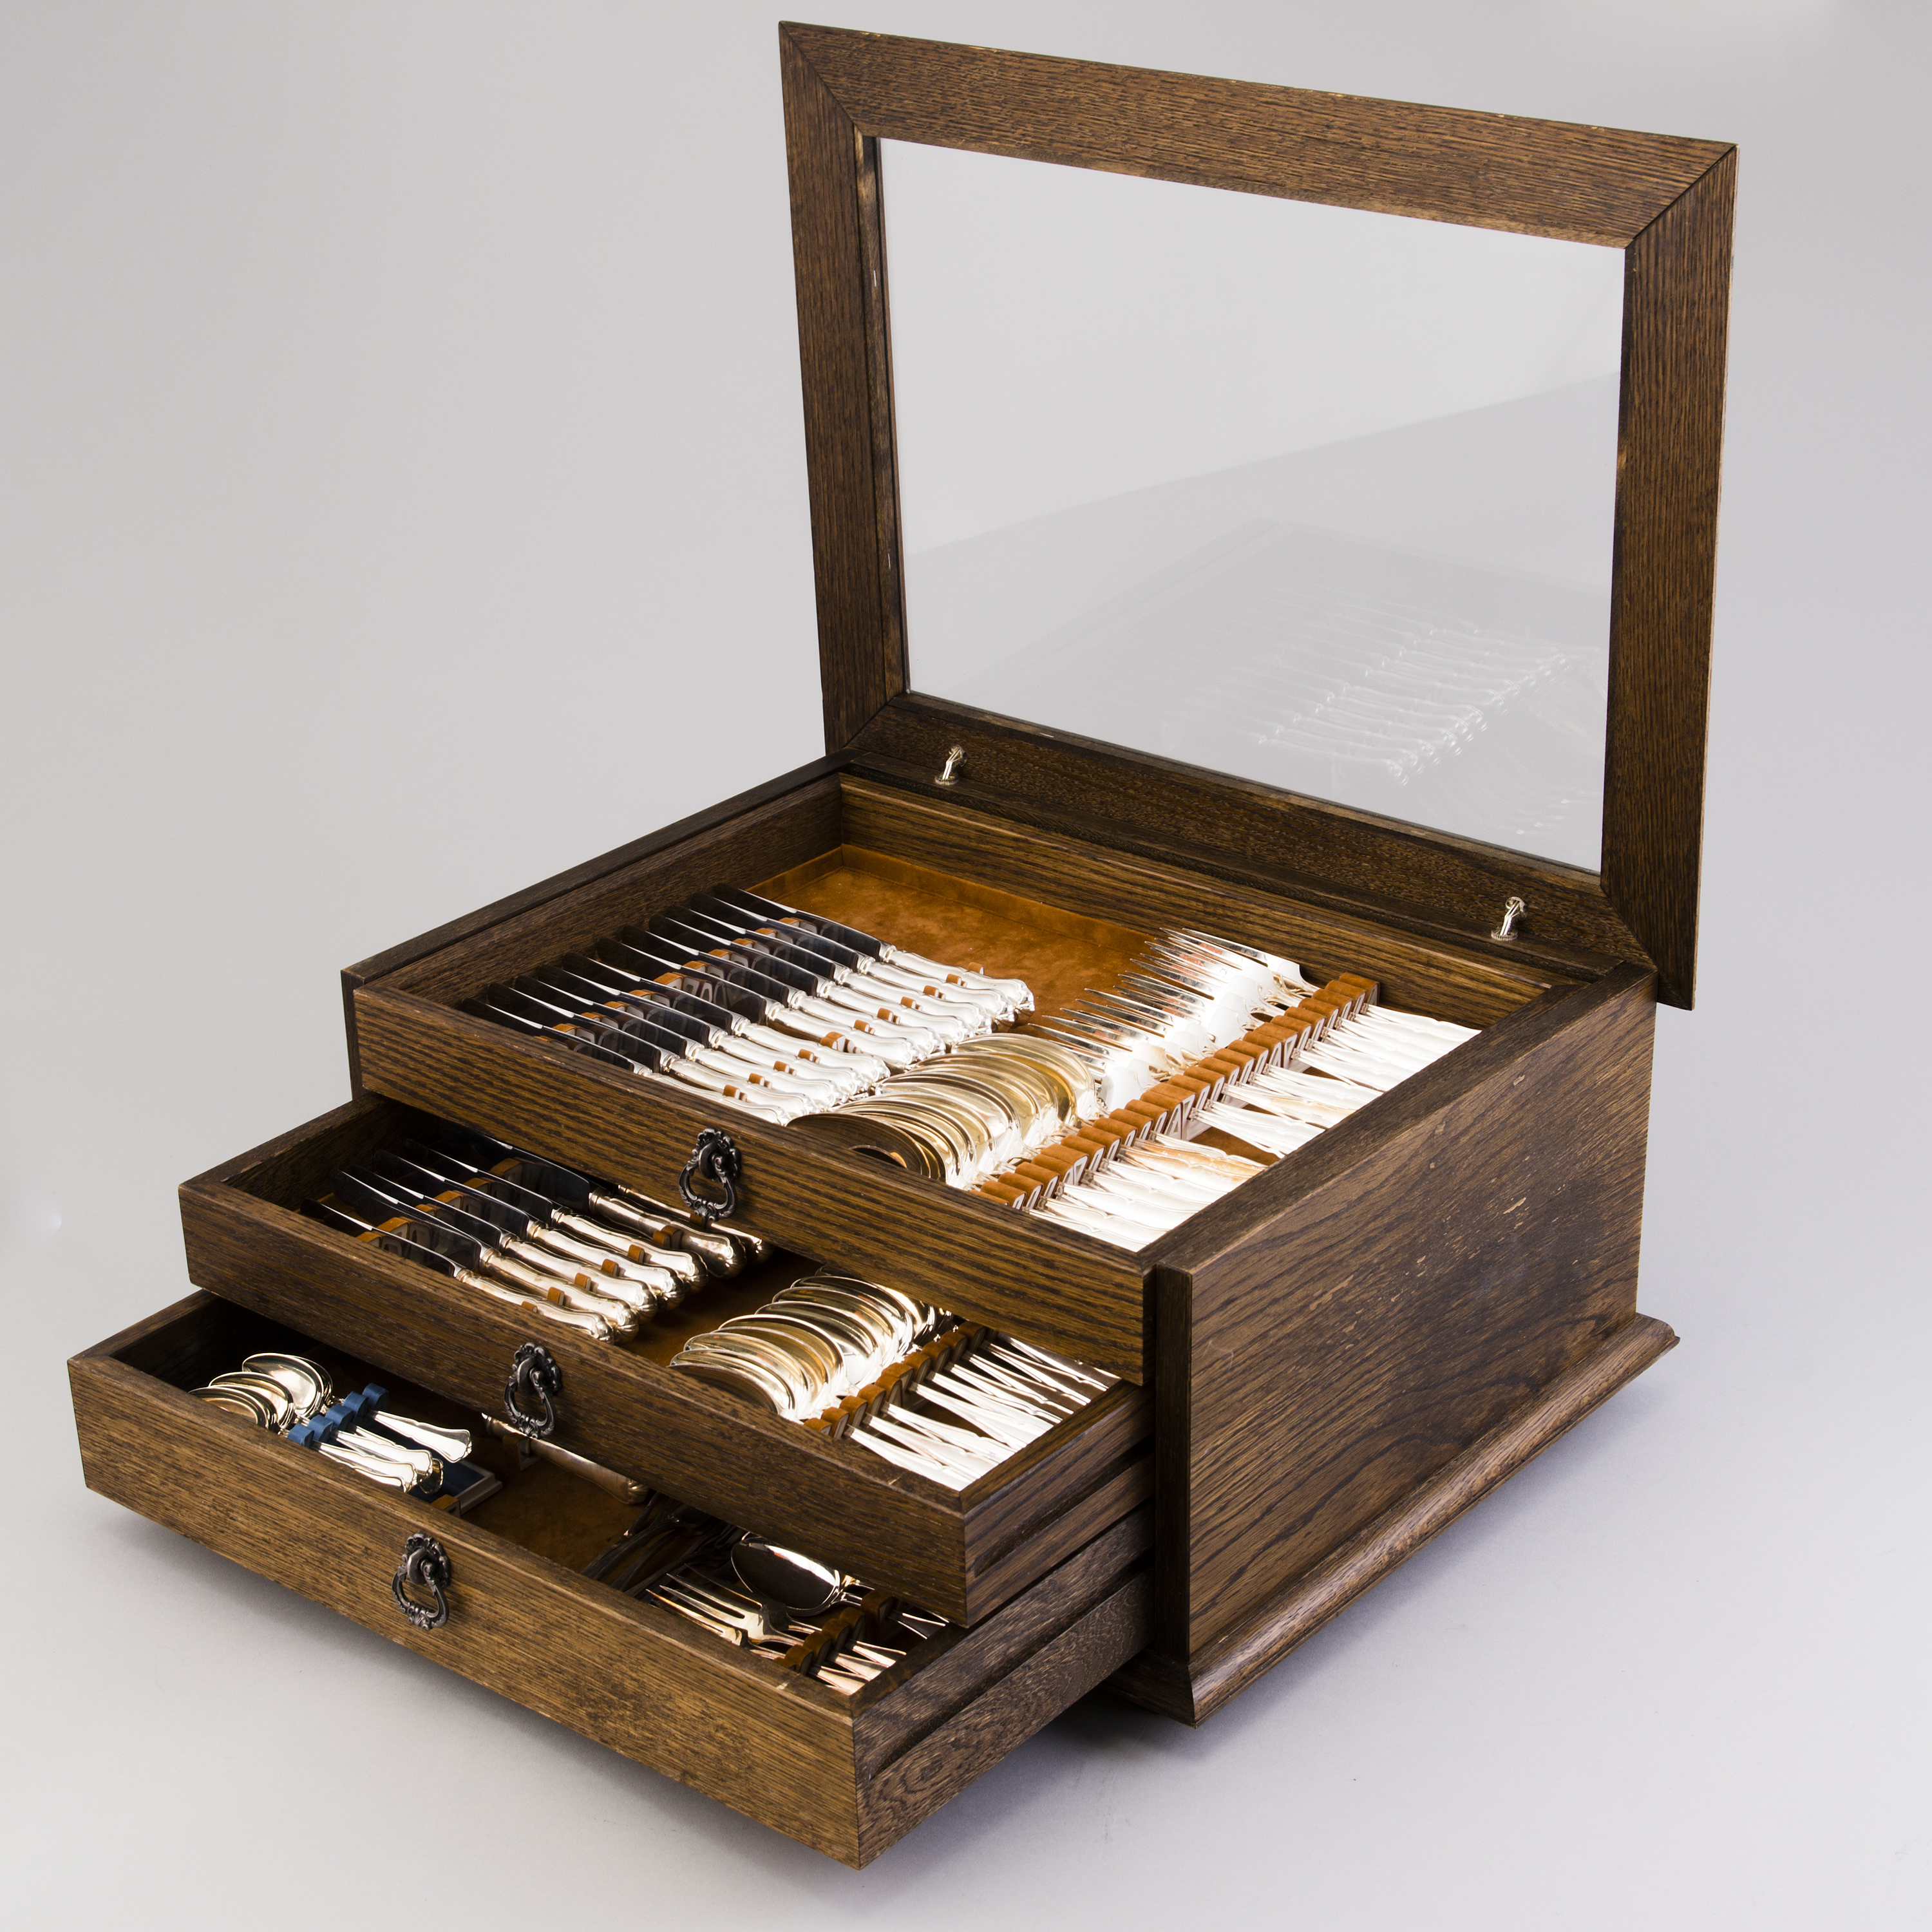 A 12 Piece Set Of Chippendale Silver Cutlery In Wooden Box